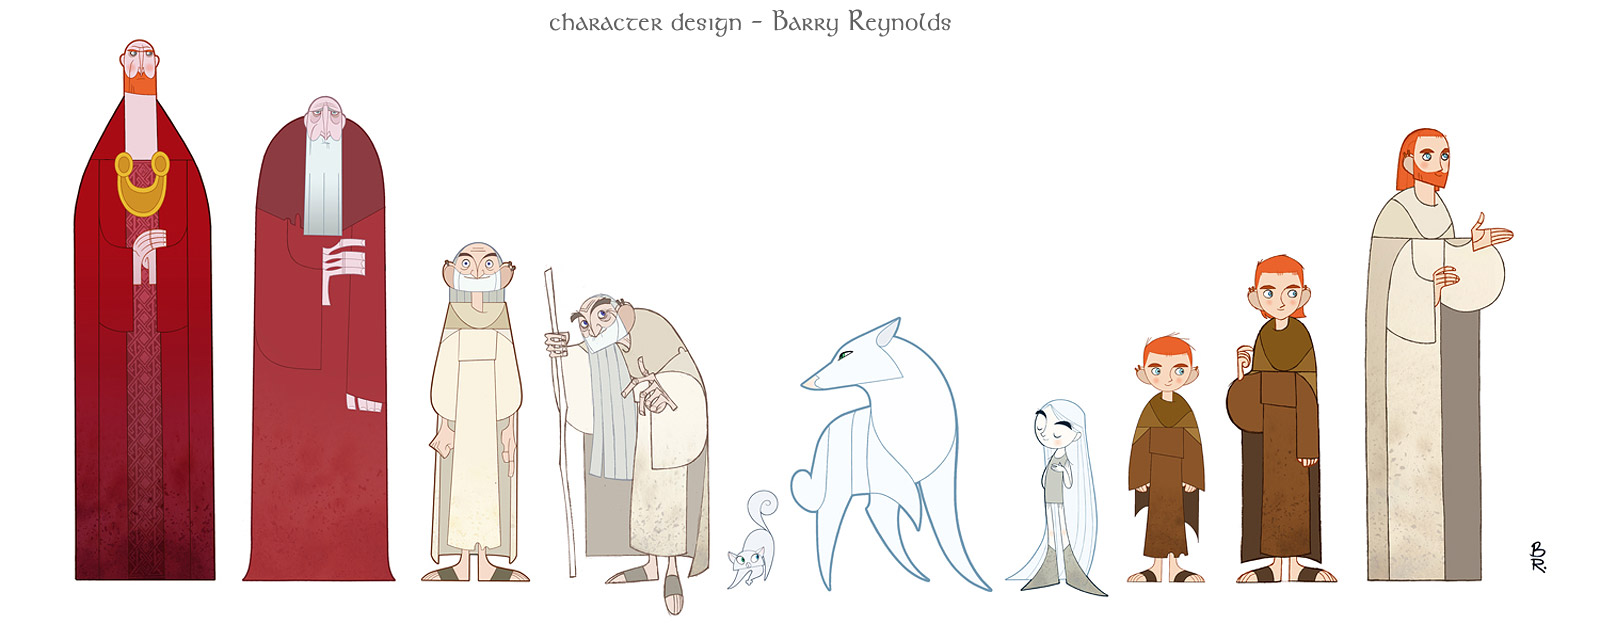 secret_of_kells_size_comparison_11_barry_reynolds.jpg